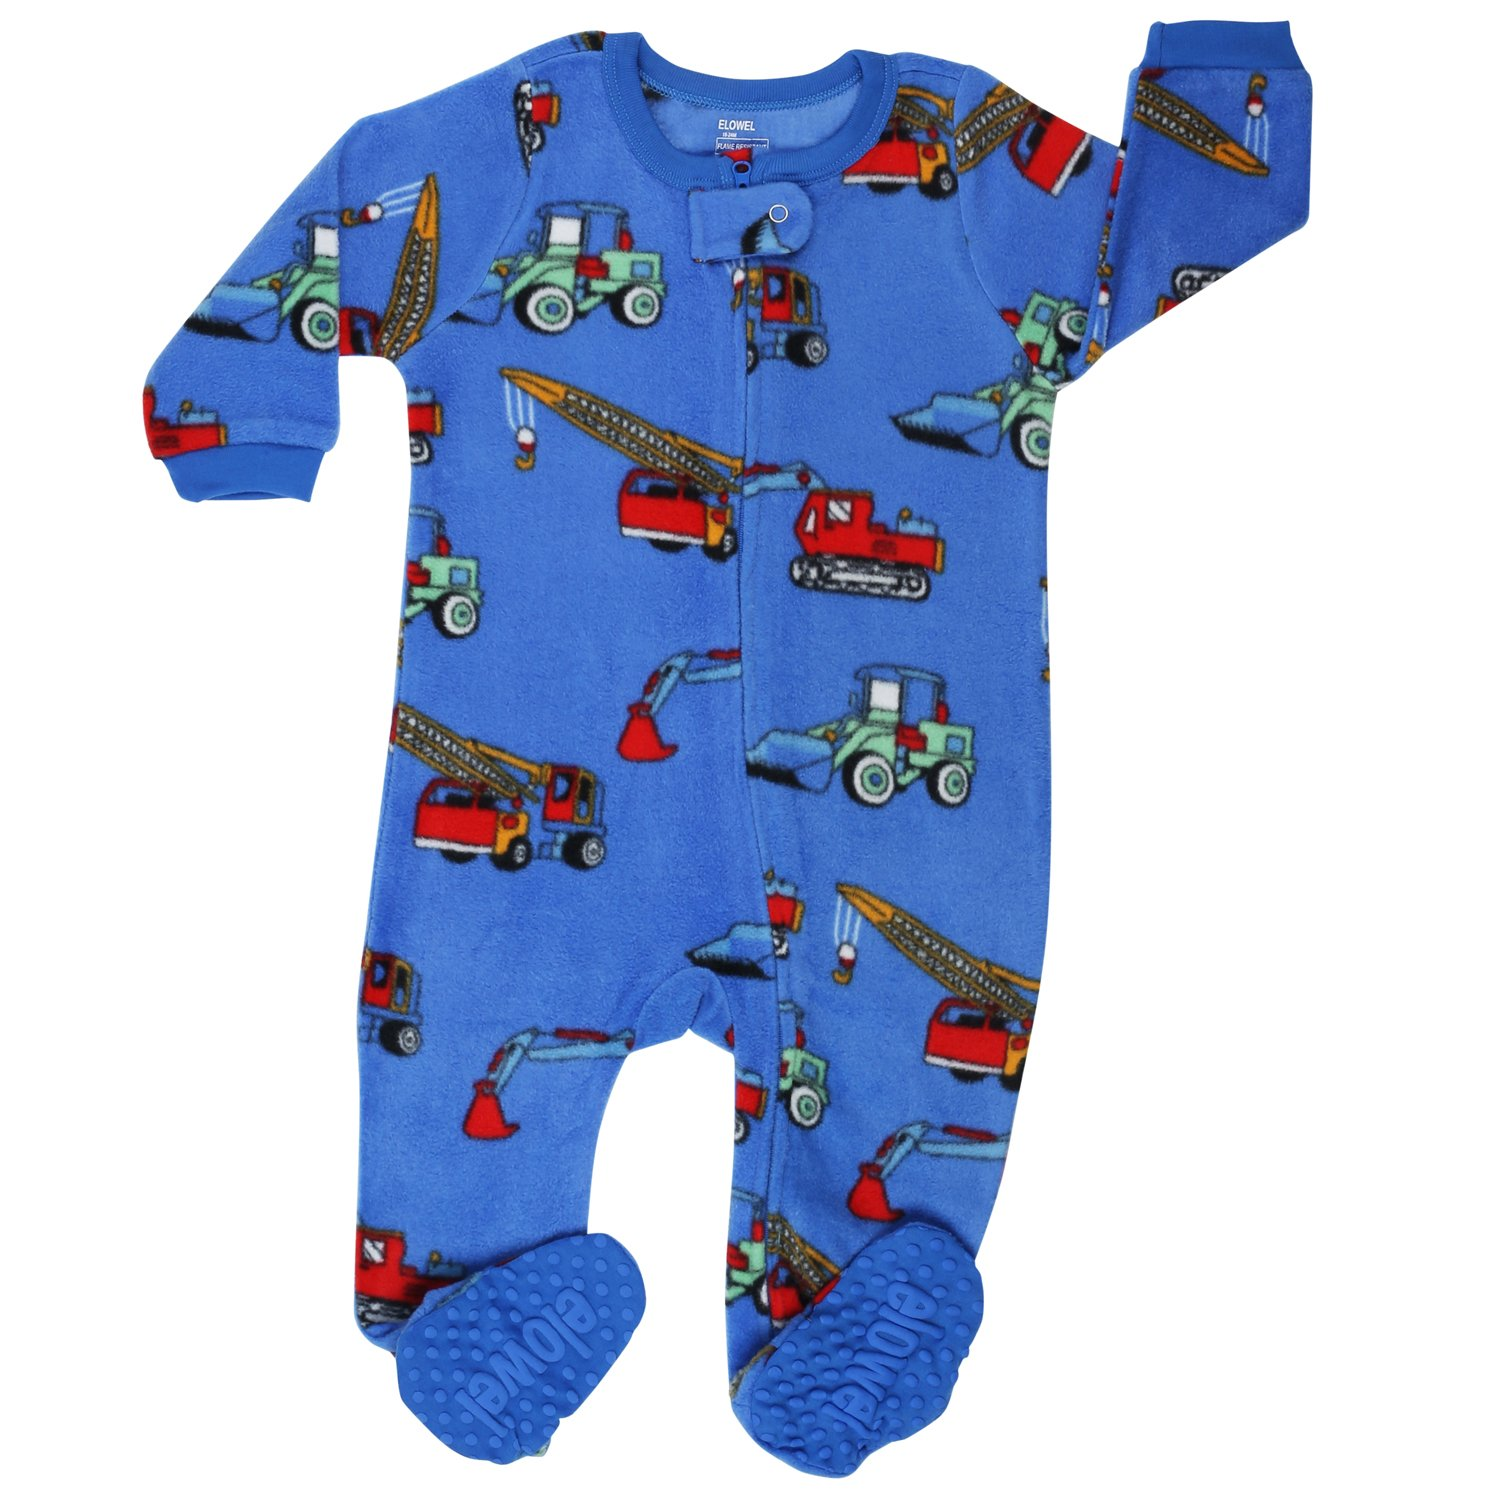 Onseie Nightwear for Baby elowel Boys Pyjama Little Boys Multiple Colours /& Designs Avalibale Footed Pyjama 100/% Polyester Toddler 5y 1 Piece Warm Fleece Sleapwear Sizes: 6m